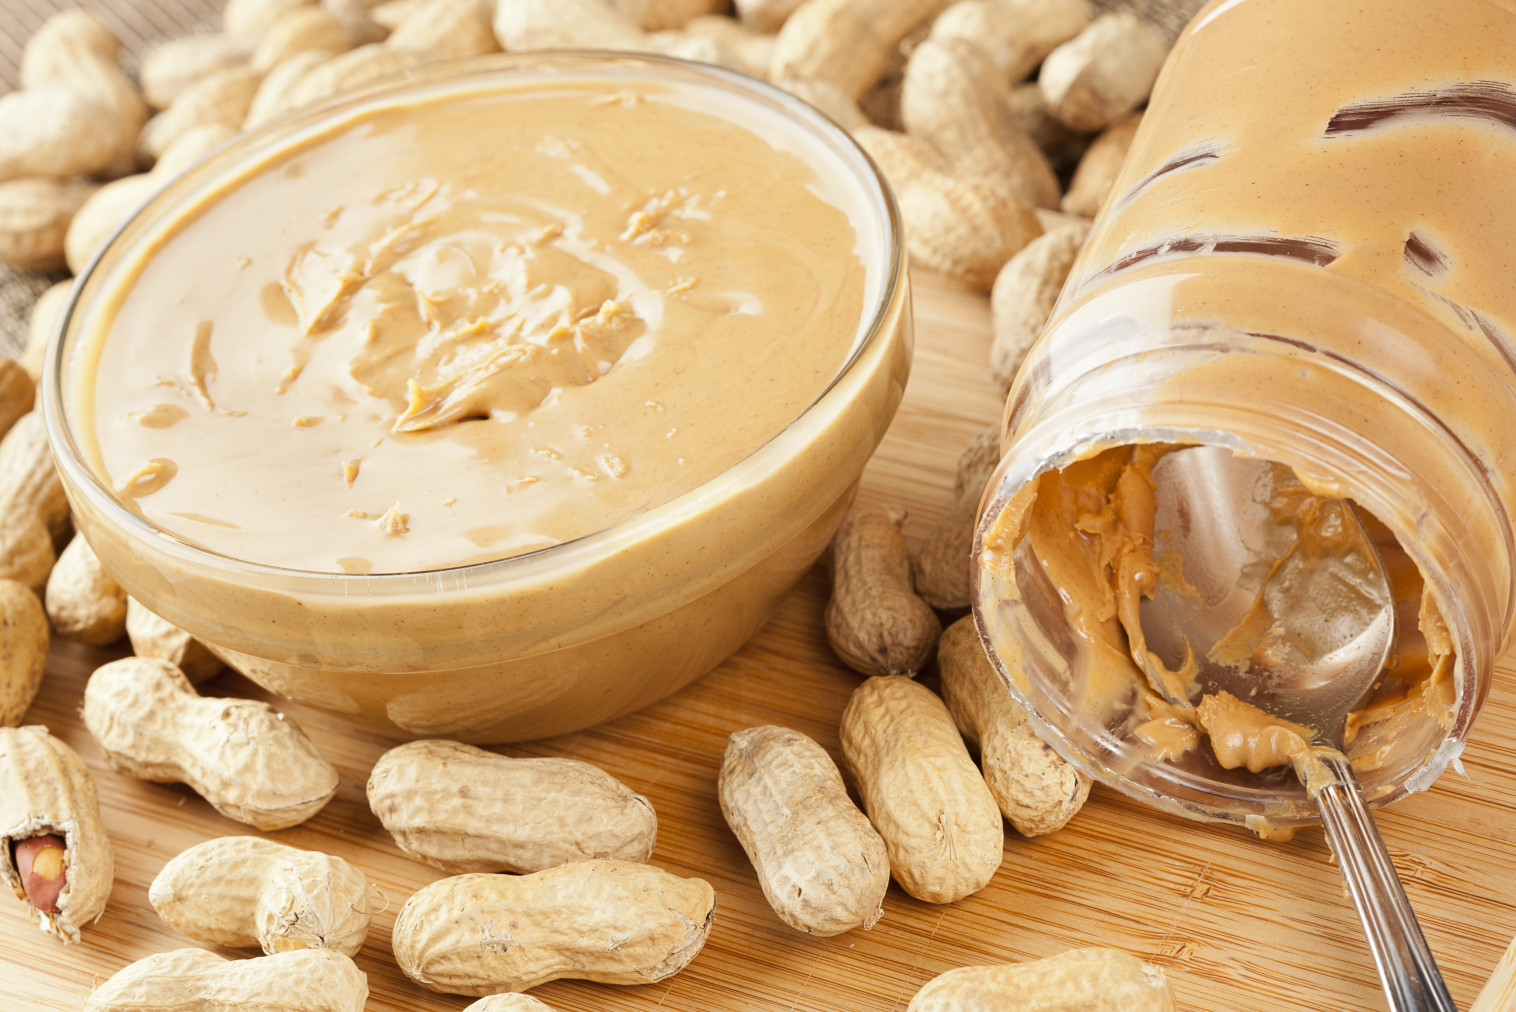 Creamy Brown Peanut Butter on a background; Shutterstock ID 109760069; PO: The Huffington Post; Job: The Huffington Post; Client: The Huffington Post; Other: The Huffington Post